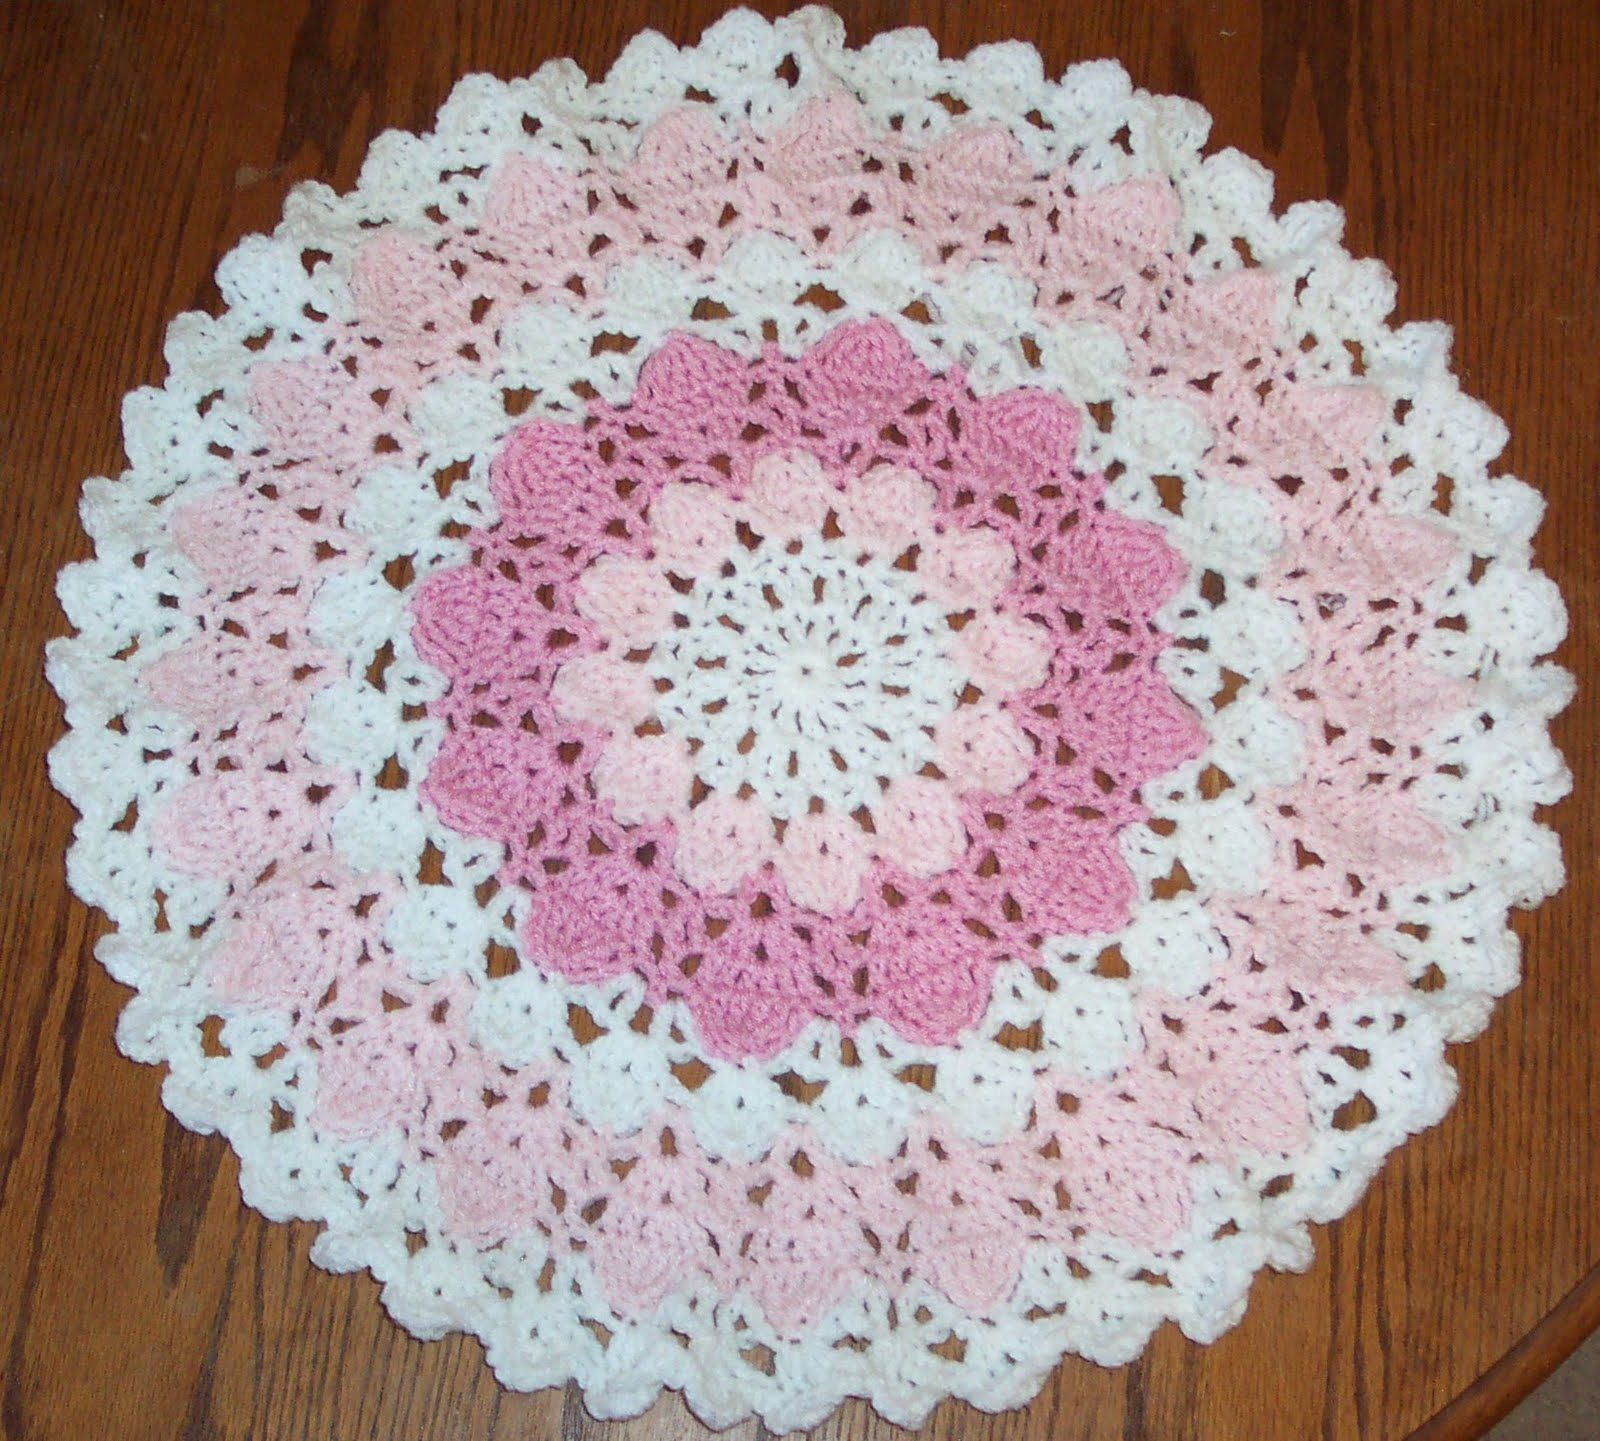 Crochet Patterns Doilies Beginners : BEGINNER CROCHET DOILY PATTERN Crochet Patterns